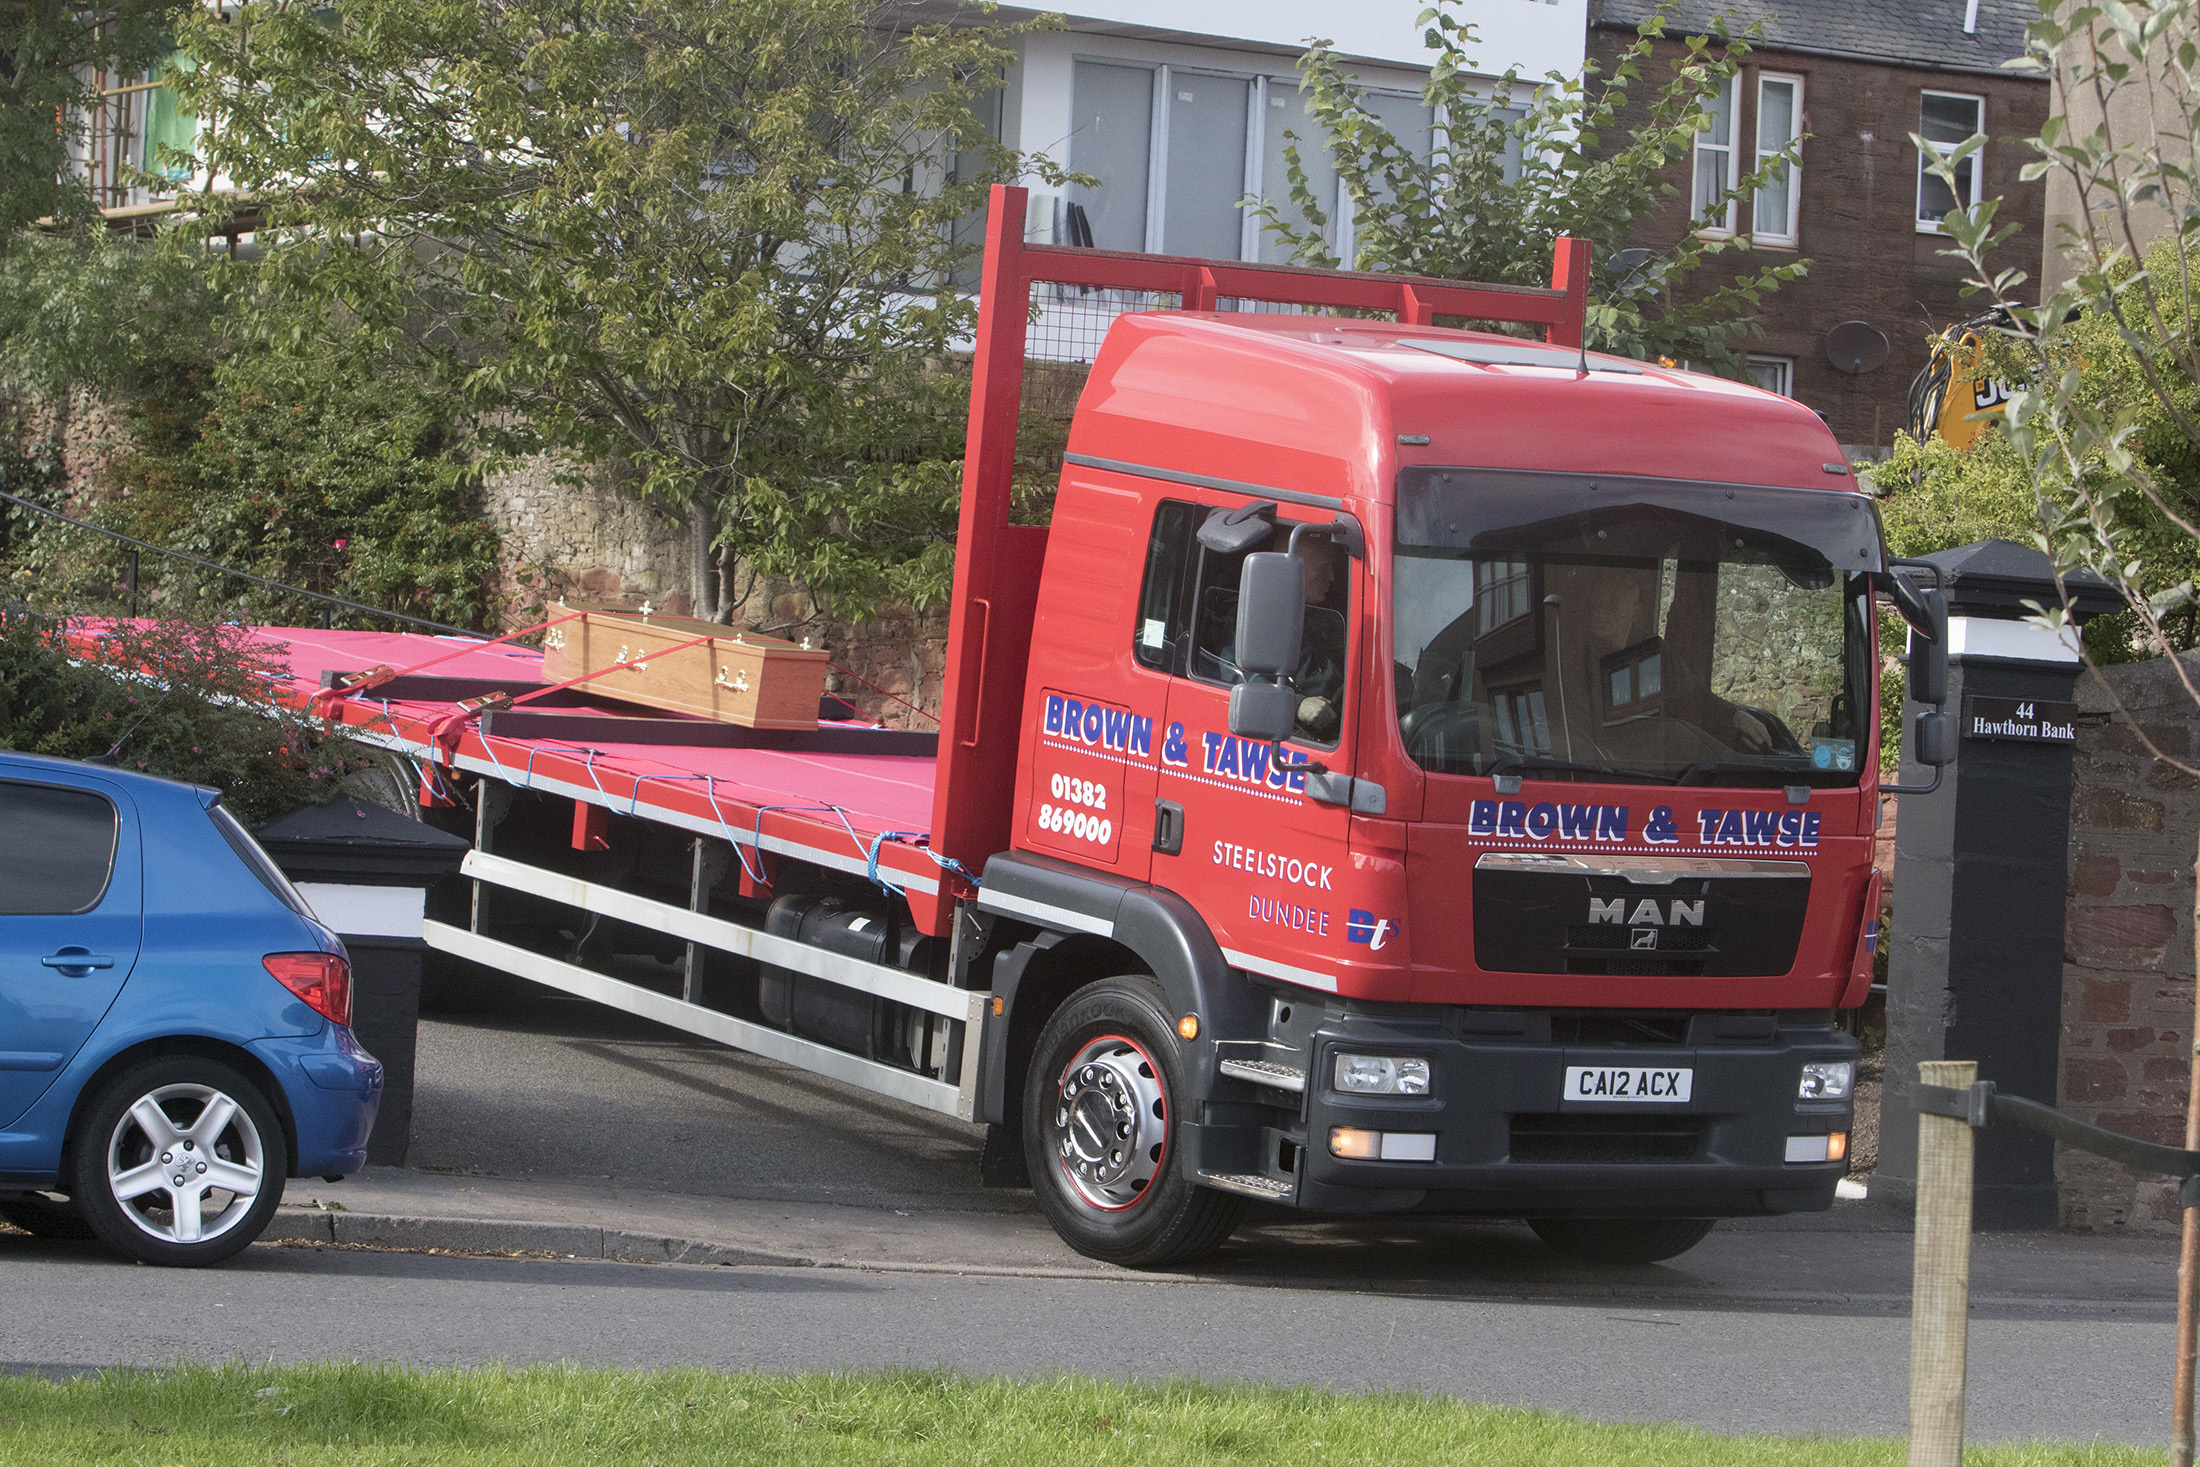 The lorry was freshly painted for the funeral of Mike Willox.